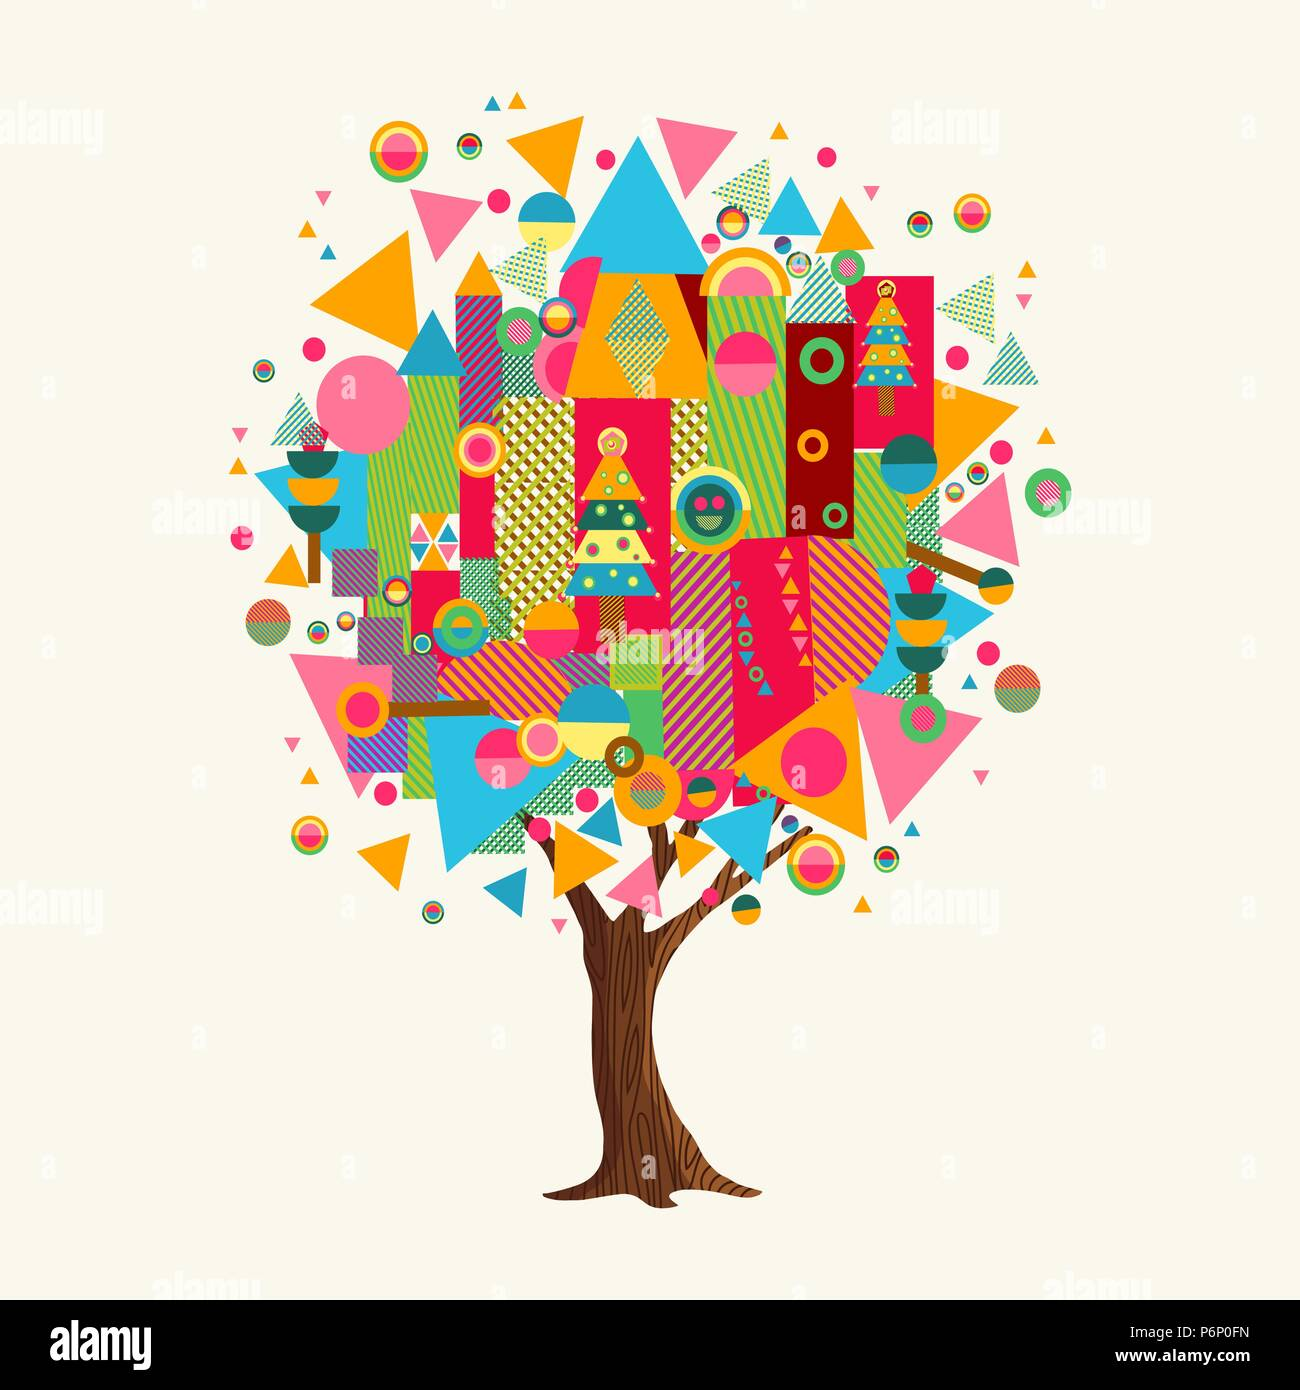 Tree Made Of Colorful Abstract Shapes Vibrant Color Geometric Icons